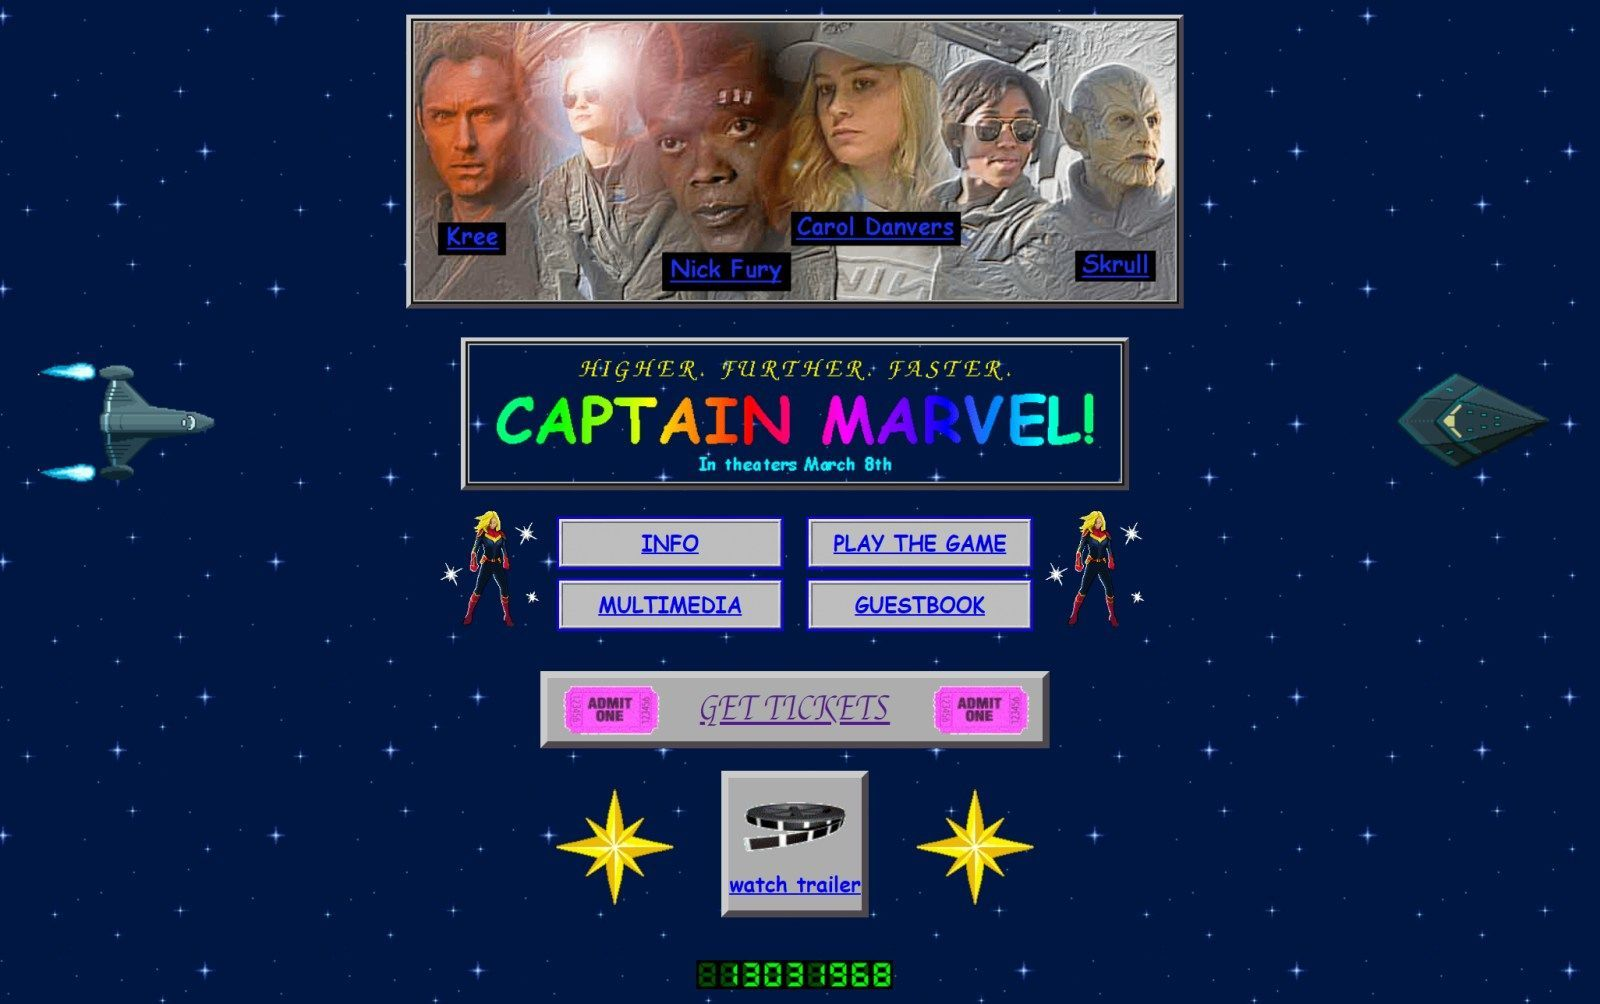 The Captain Marvel Site Revisits Classic 90s Web Design Web Design Websites Online Web Design Web Design Company